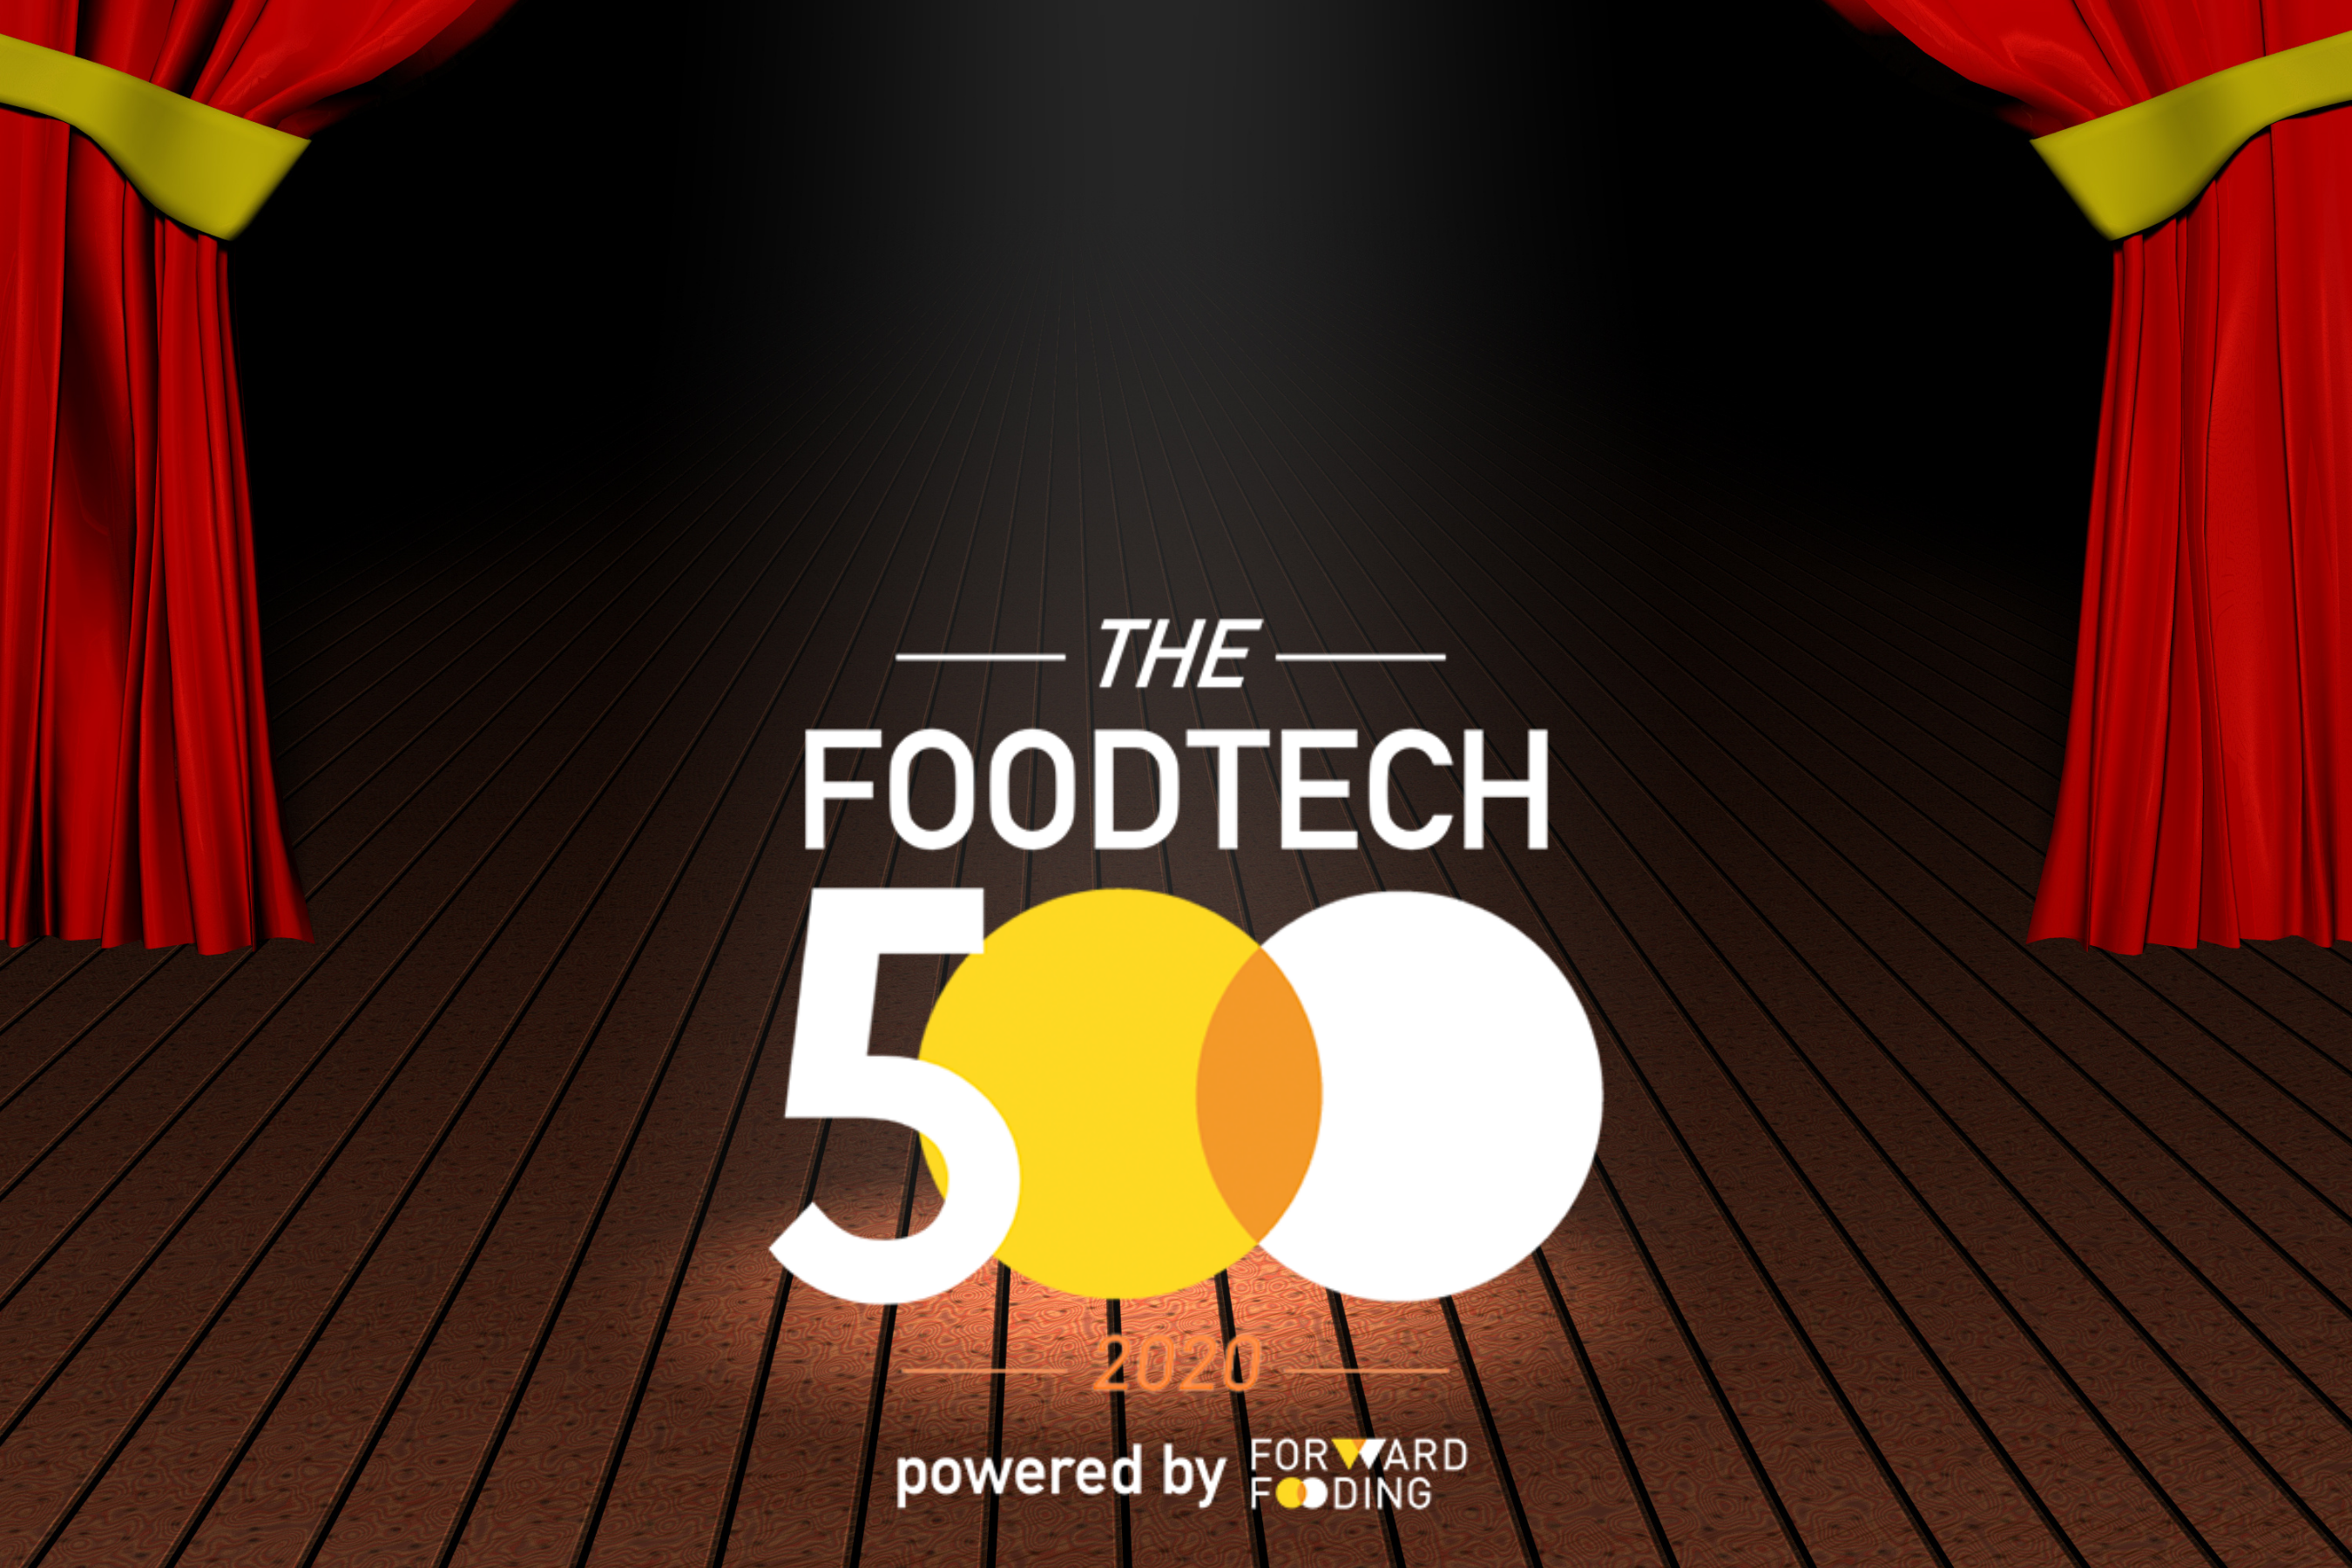 CURTAIN UP ON FOODTECH500 2020